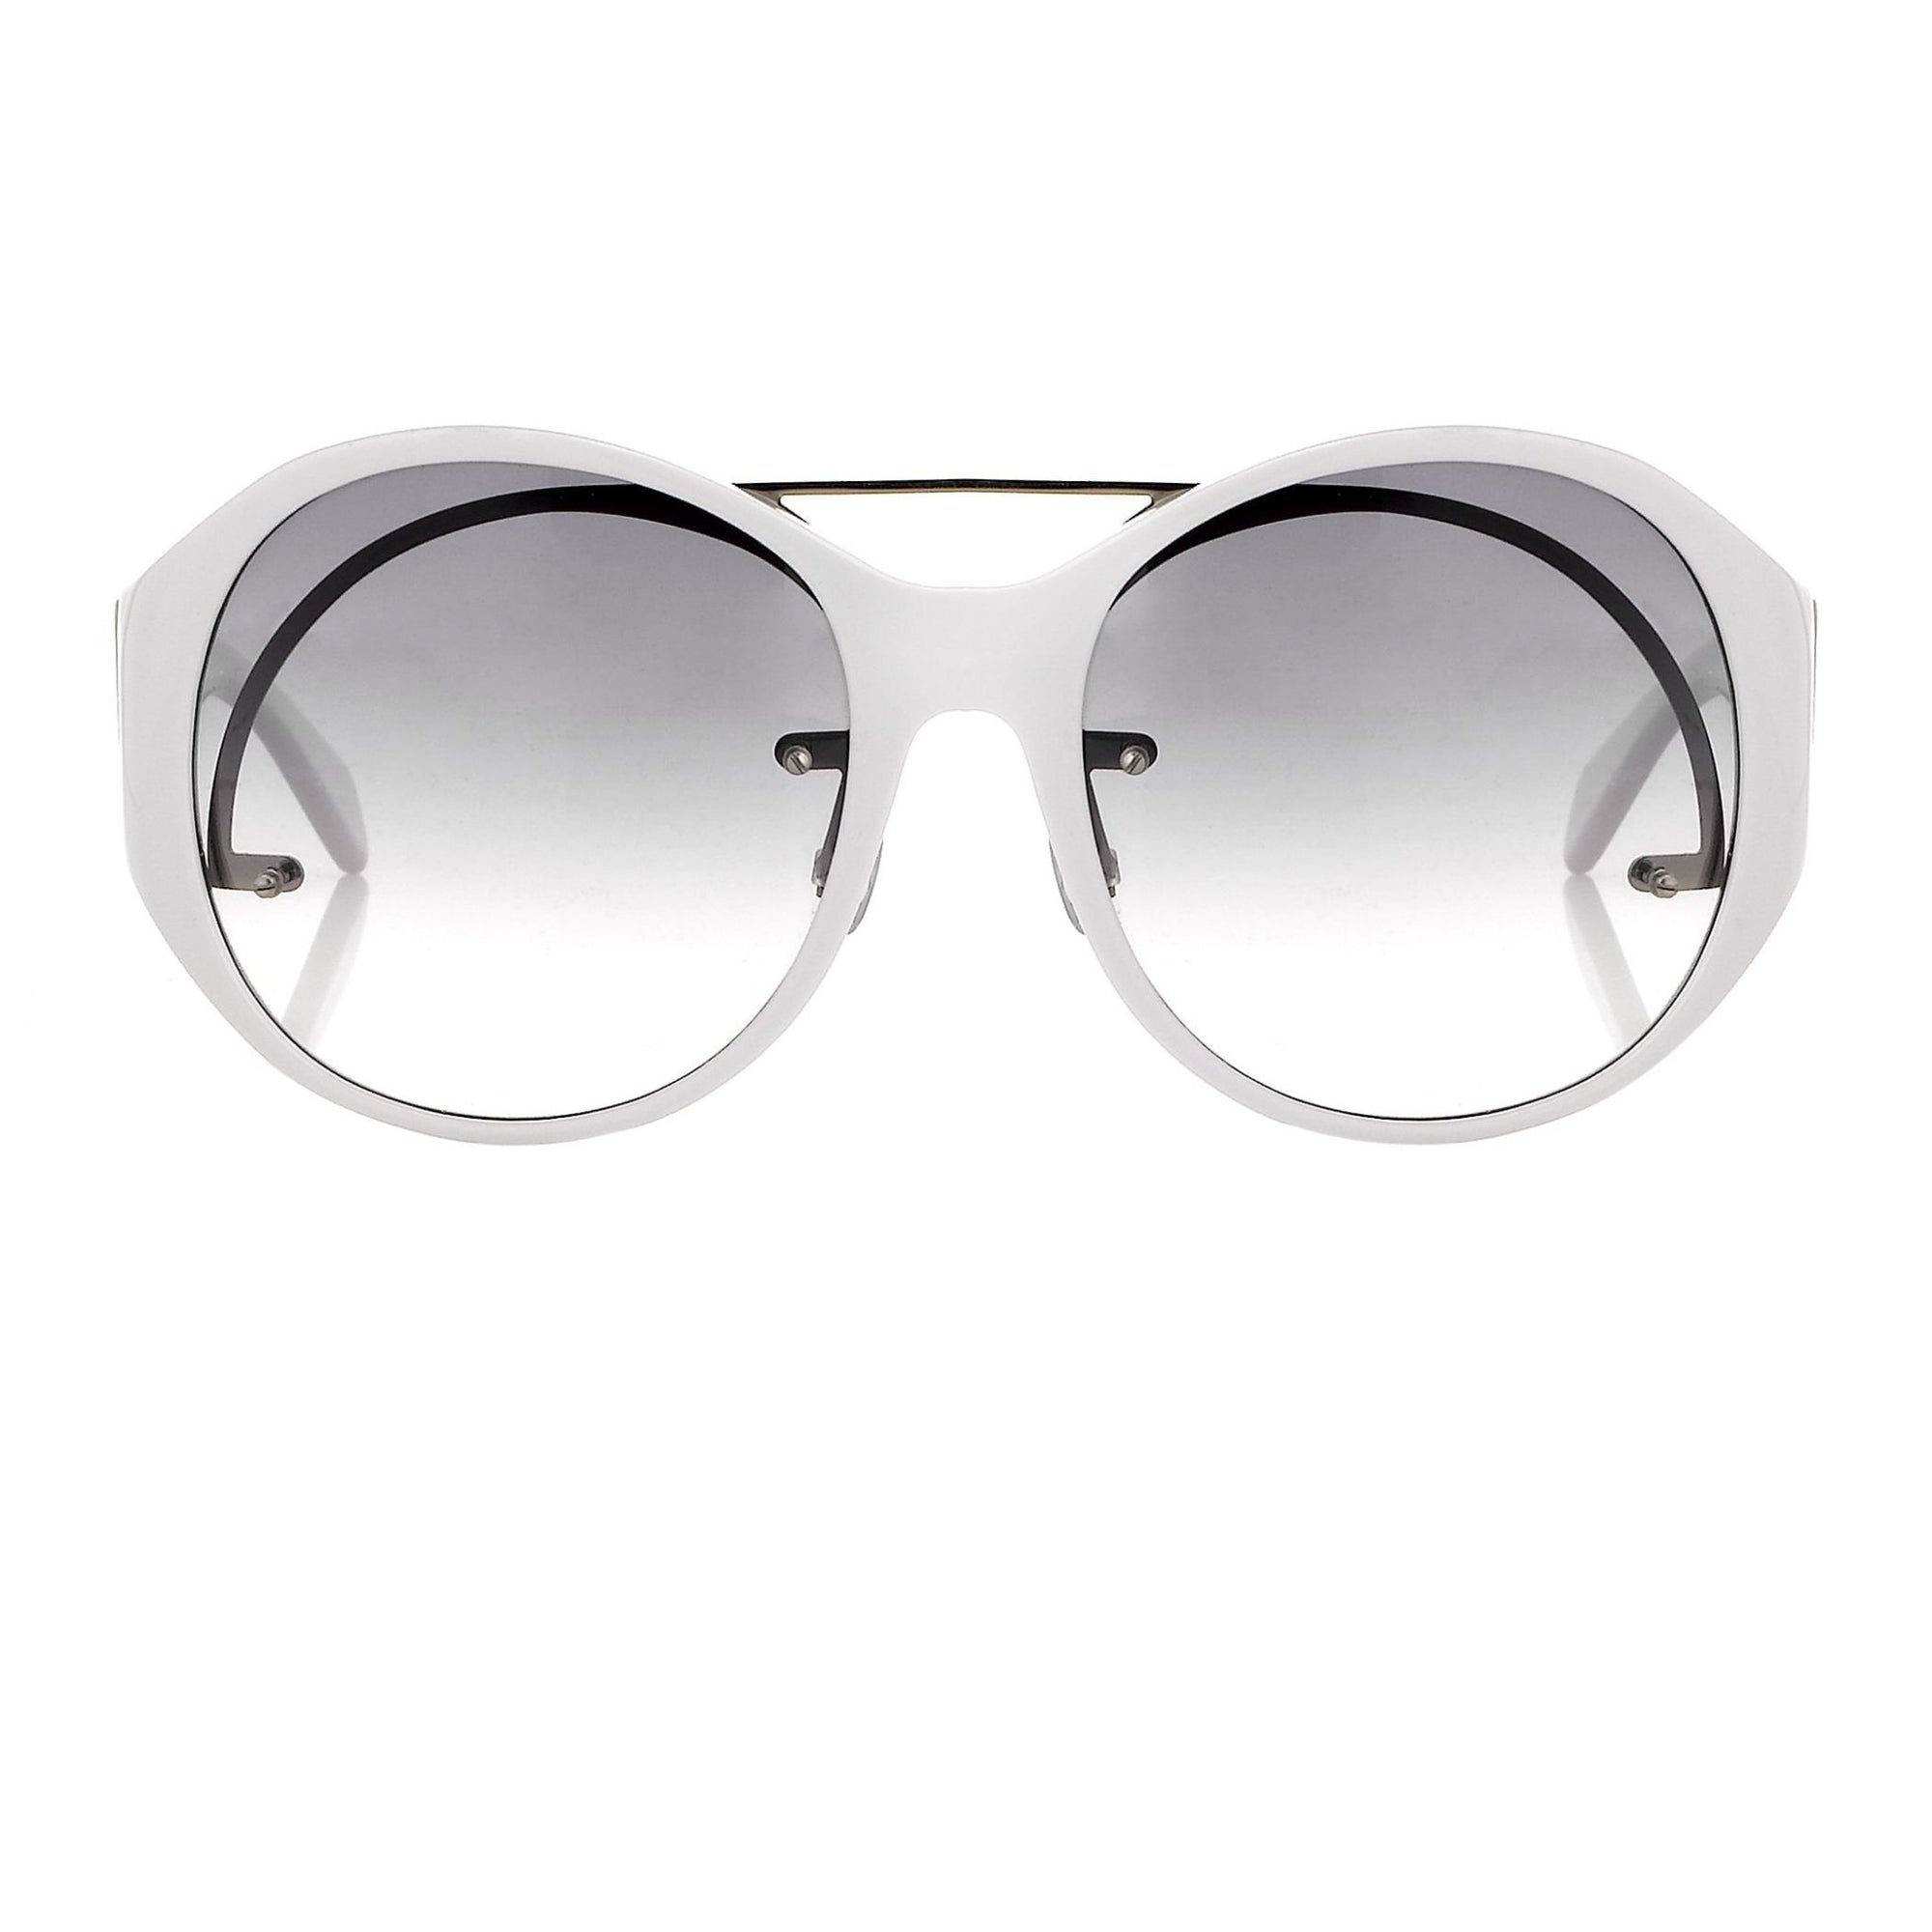 Jens Laugesen Women Sunglasses Oversized White Silver With Grey Graduated Lenses 9JL1C4WHITE - Watches & Crystals